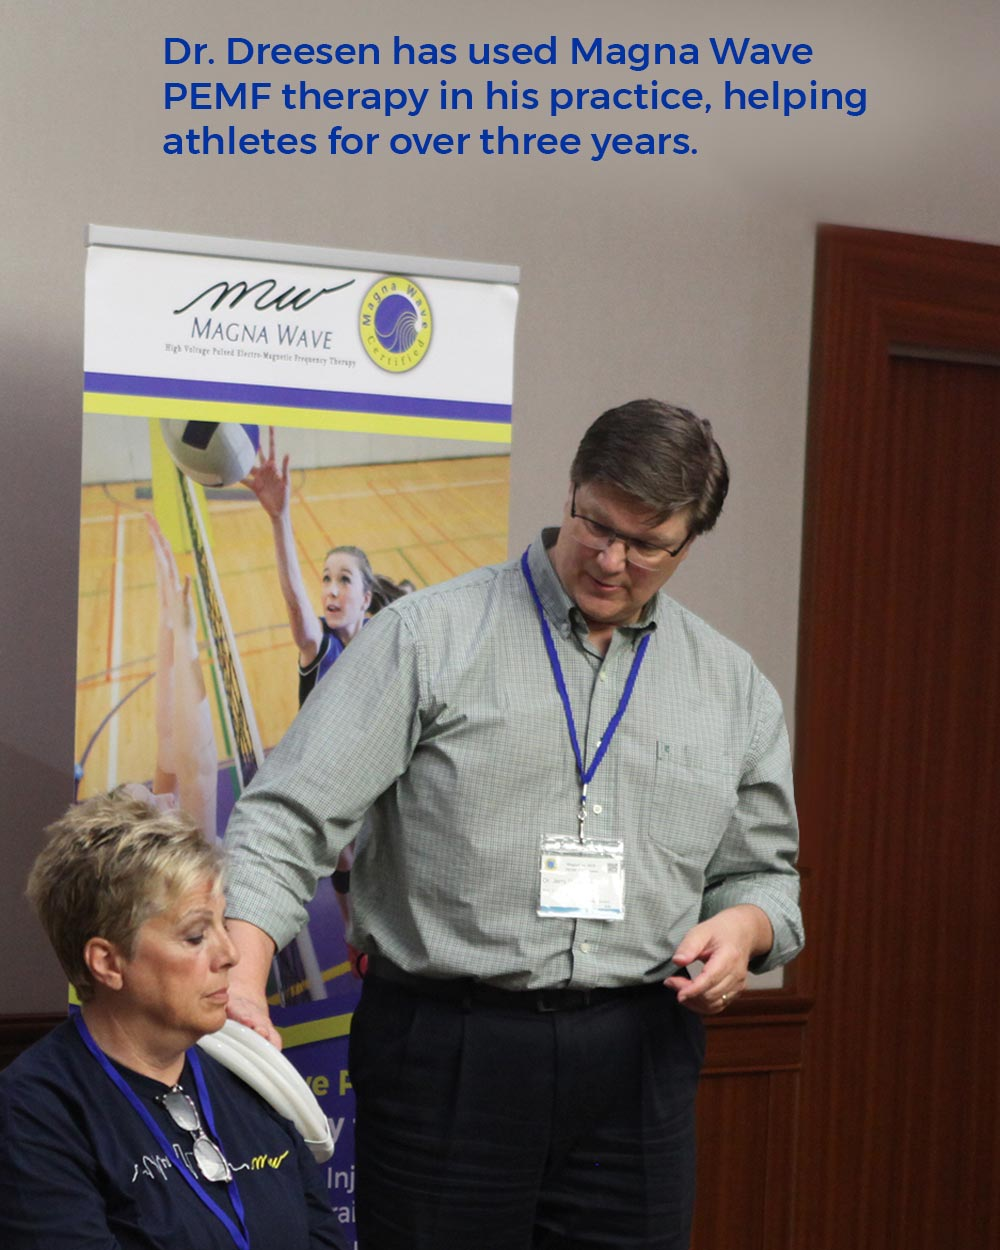 Dr. Dreesen has used Magna Wave PEMF therapy in his practice, helping athletes for over three years.